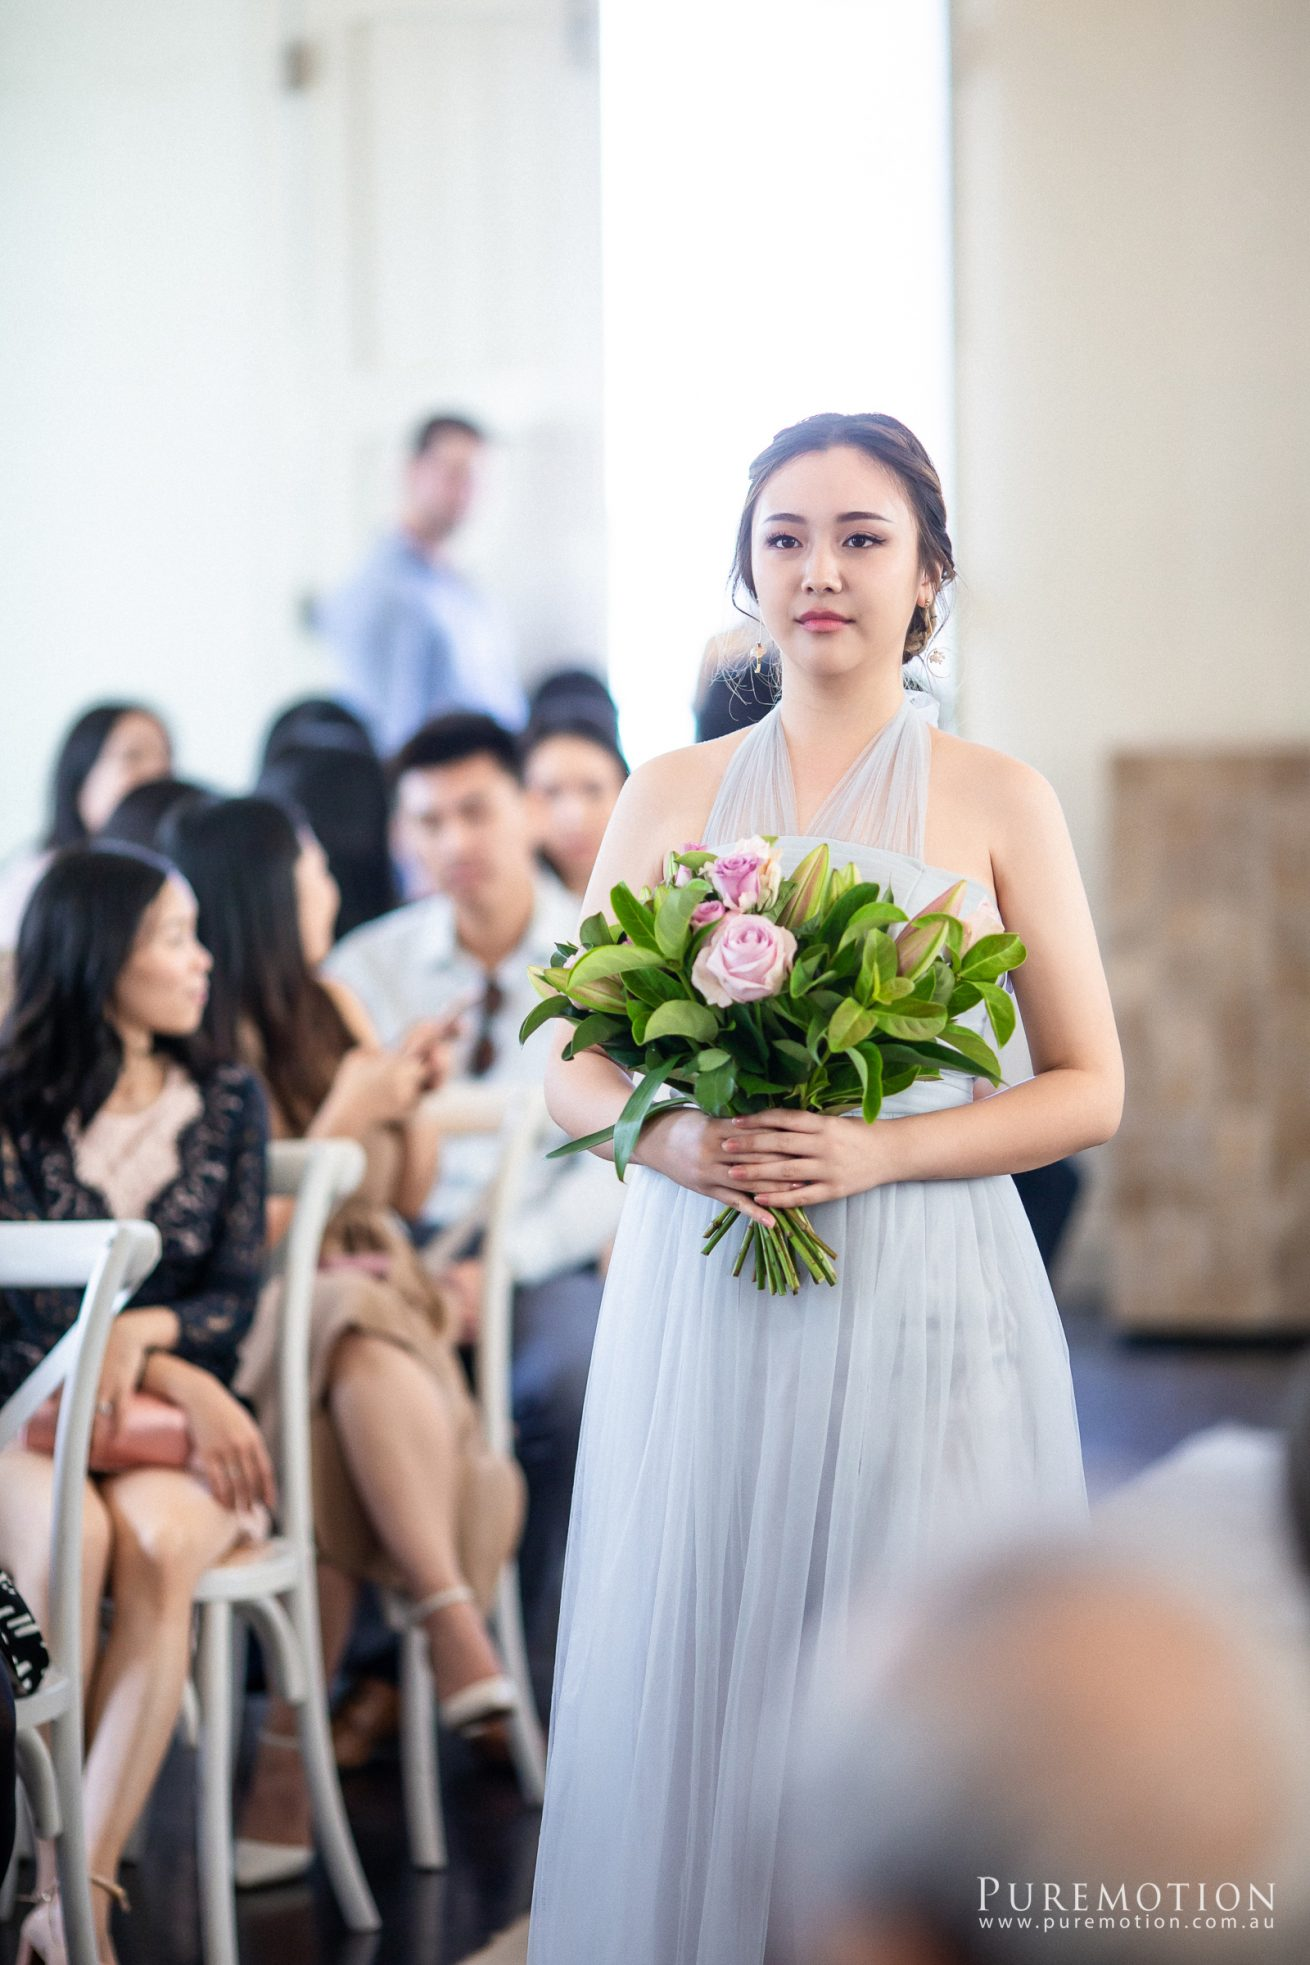 190309 Puremotion Wedding Photography Brisbane Alex Huang AngelaSunny_Edited-0062